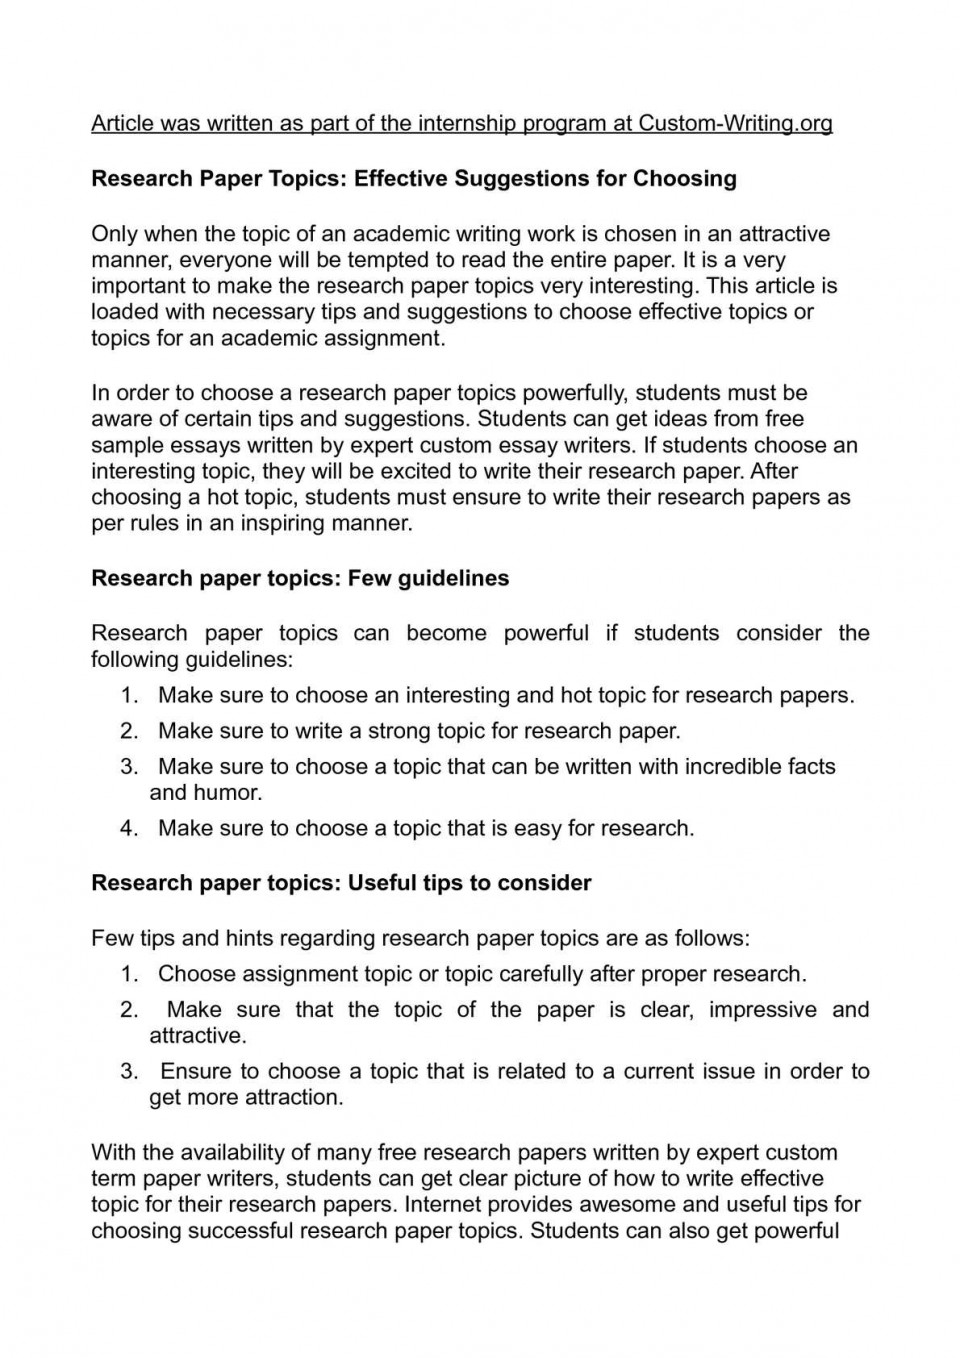 016 Easy Research Paper Topics Fantastic To Write About For Computer Science 960